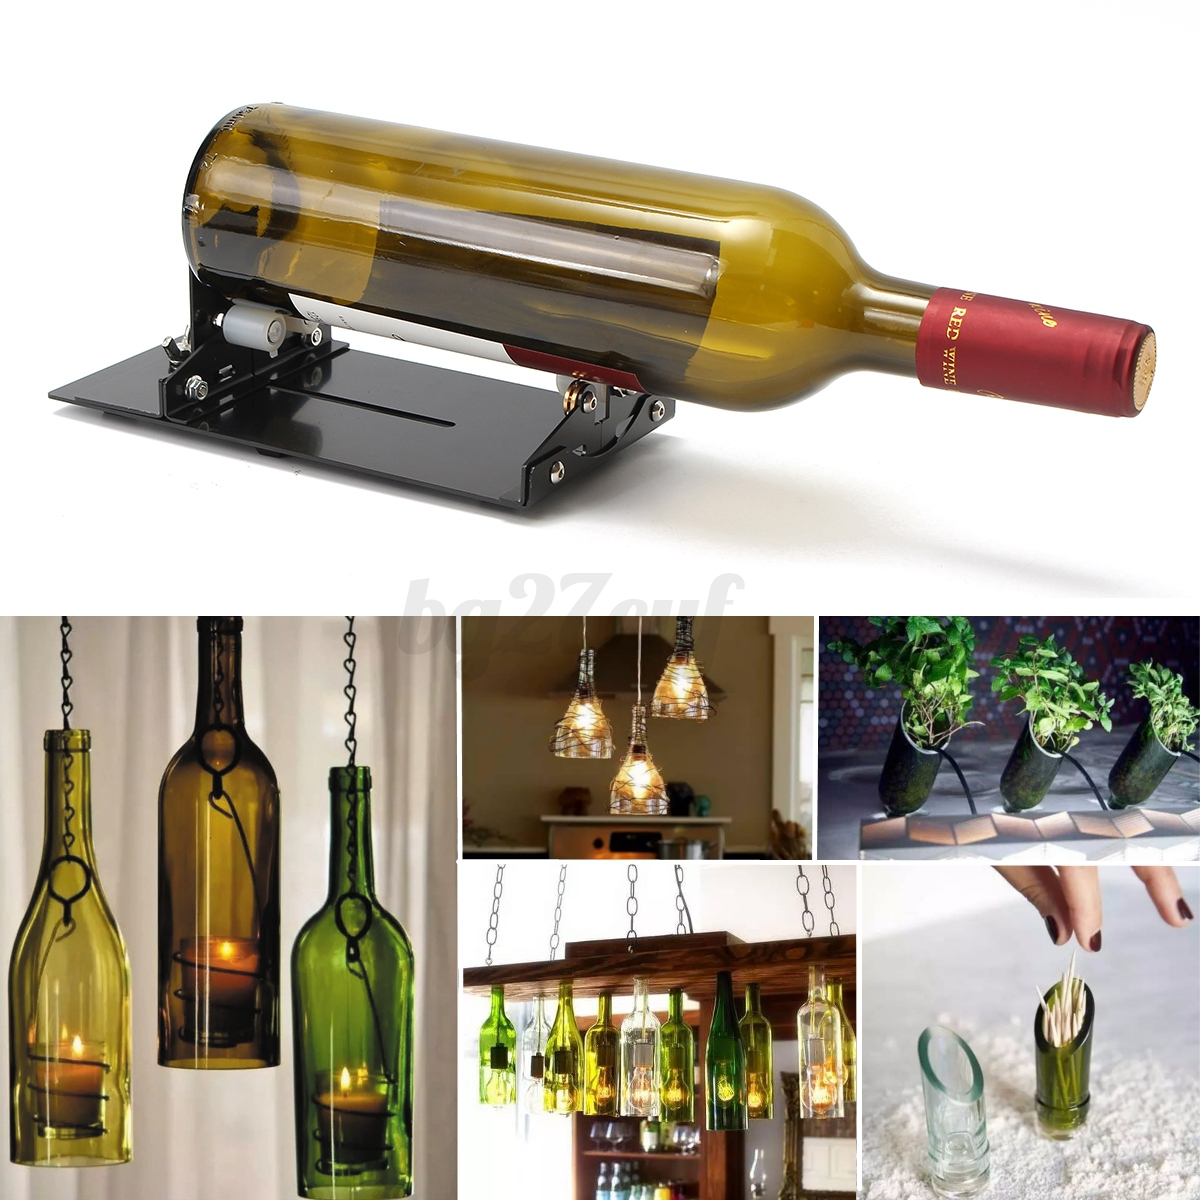 Glass diy bottle cutter wine bottles jar cutting machine for Diy wine bottle cutter